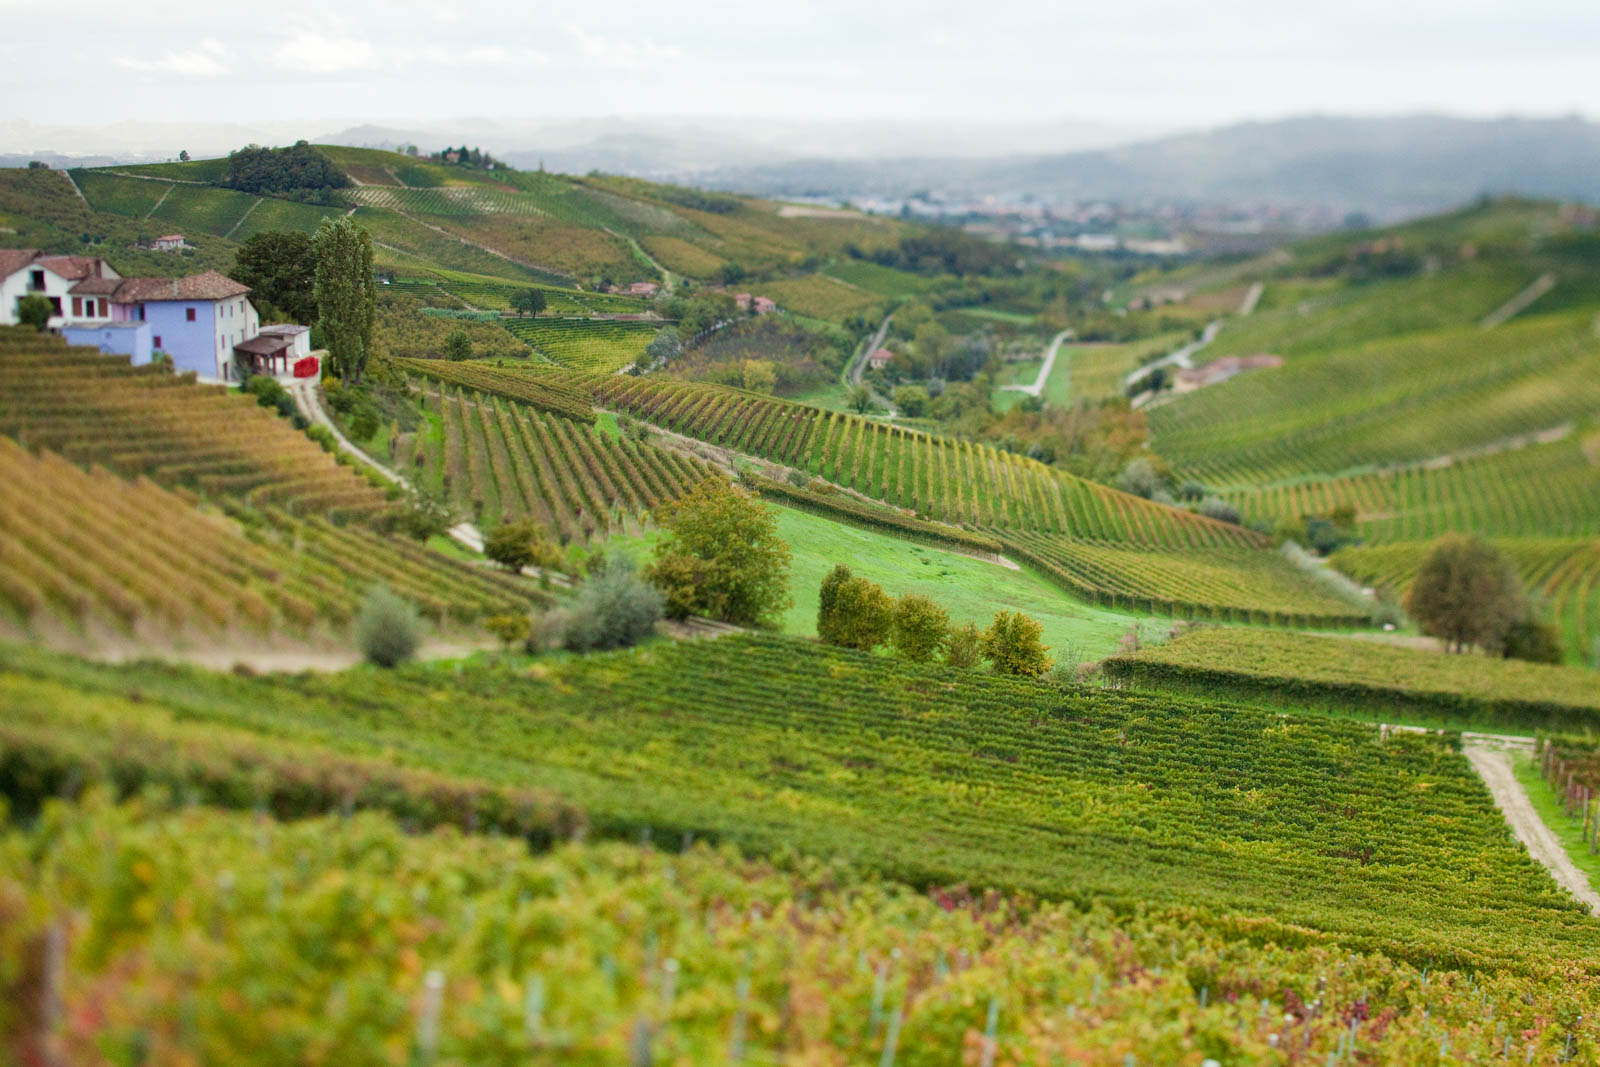 The vineyards of the Barbaresco wine region in Piedmont, Italy. ©Kevin Day / Tanager Photography